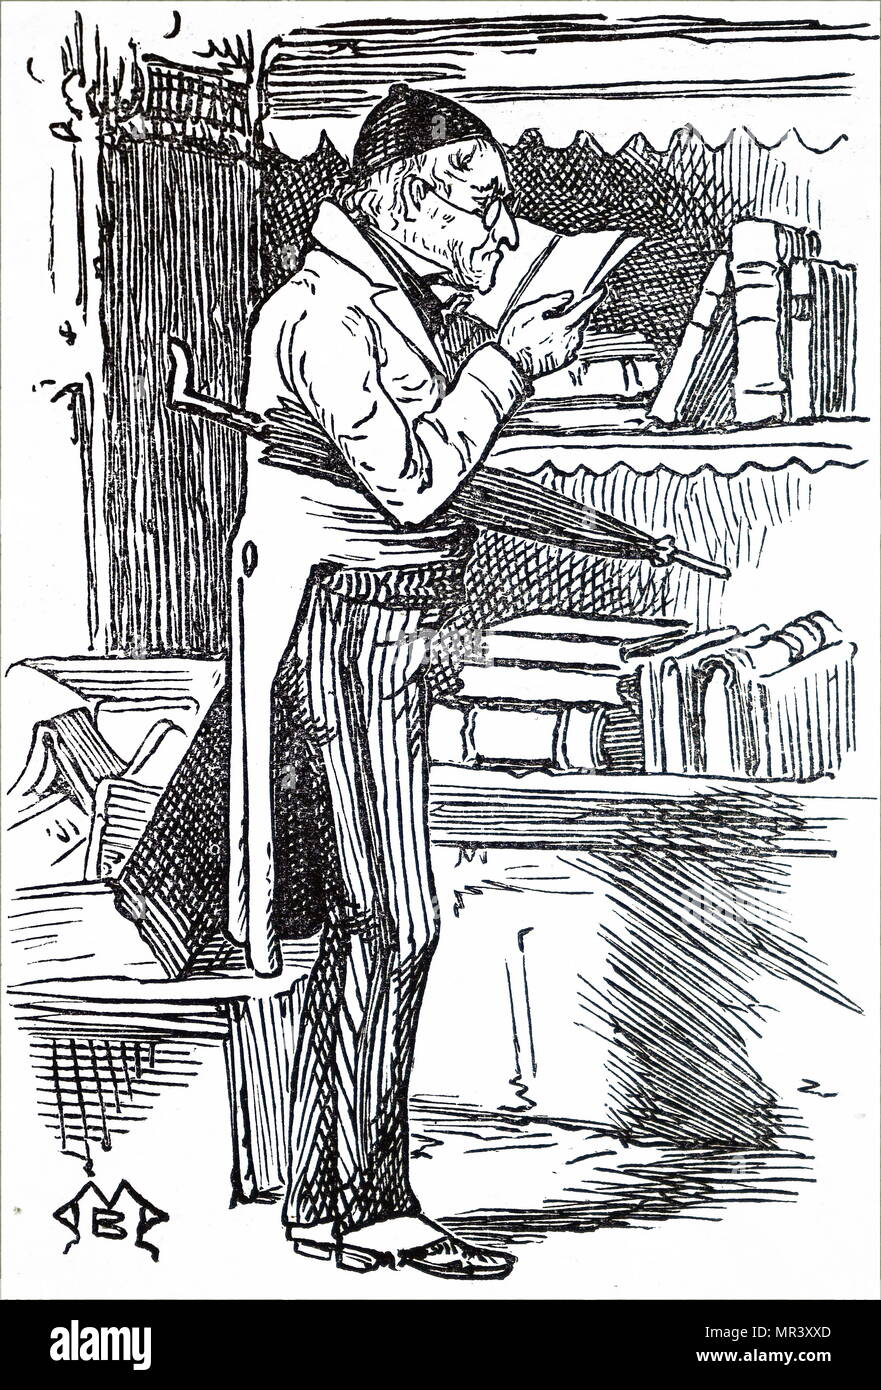 Illustration depicting an old man browsing in a second-hand bookshop. Dated 19th century - Stock Image